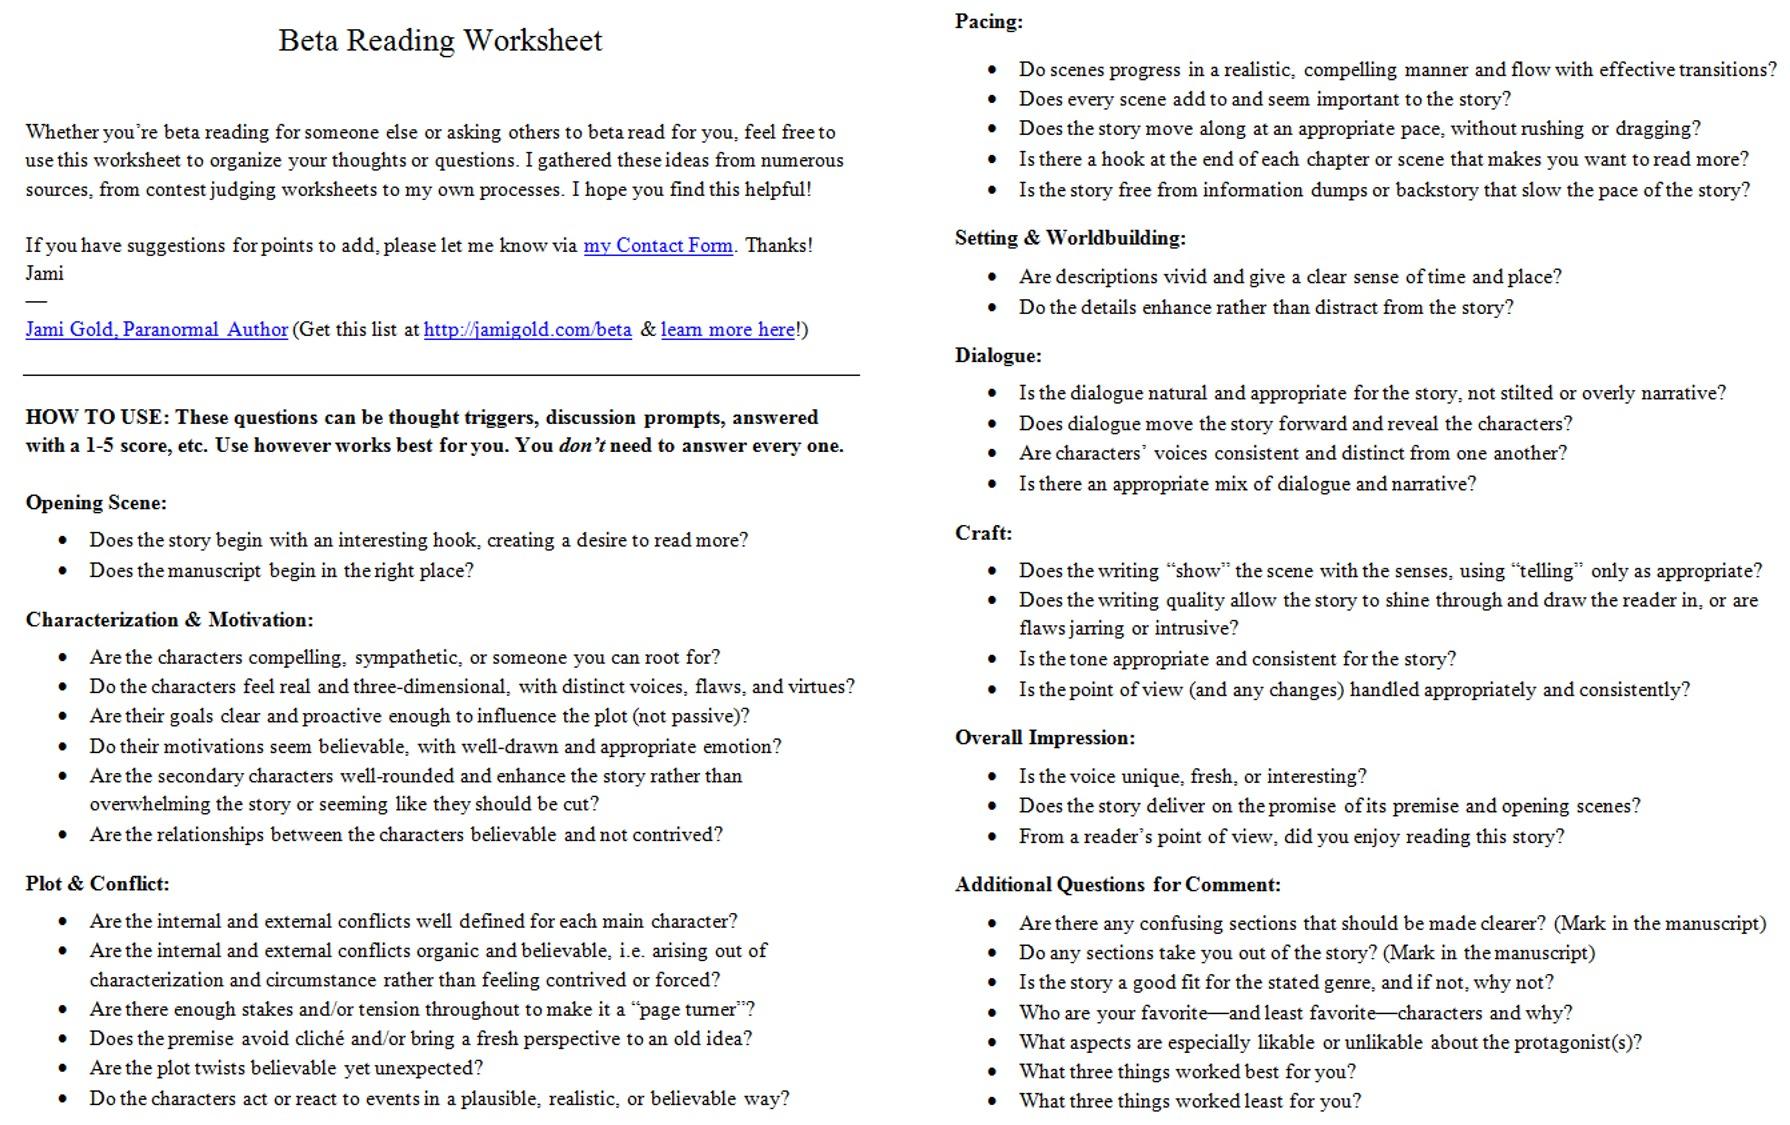 Proatmealus  Surprising Worksheets For Writers  Jami Gold Paranormal Author With Interesting Screen Shot Of The Twopage Beta Reading Worksheet With Divine Printable Worksheets For Preschoolers Also Th Grade Geometry Worksheets In Addition Custom Handwriting Worksheets And Radical Forgiveness Worksheet As Well As Simple Subject And Simple Predicate Worksheets Additionally Dangling Modifier Worksheet From Jamigoldcom With Proatmealus  Interesting Worksheets For Writers  Jami Gold Paranormal Author With Divine Screen Shot Of The Twopage Beta Reading Worksheet And Surprising Printable Worksheets For Preschoolers Also Th Grade Geometry Worksheets In Addition Custom Handwriting Worksheets From Jamigoldcom